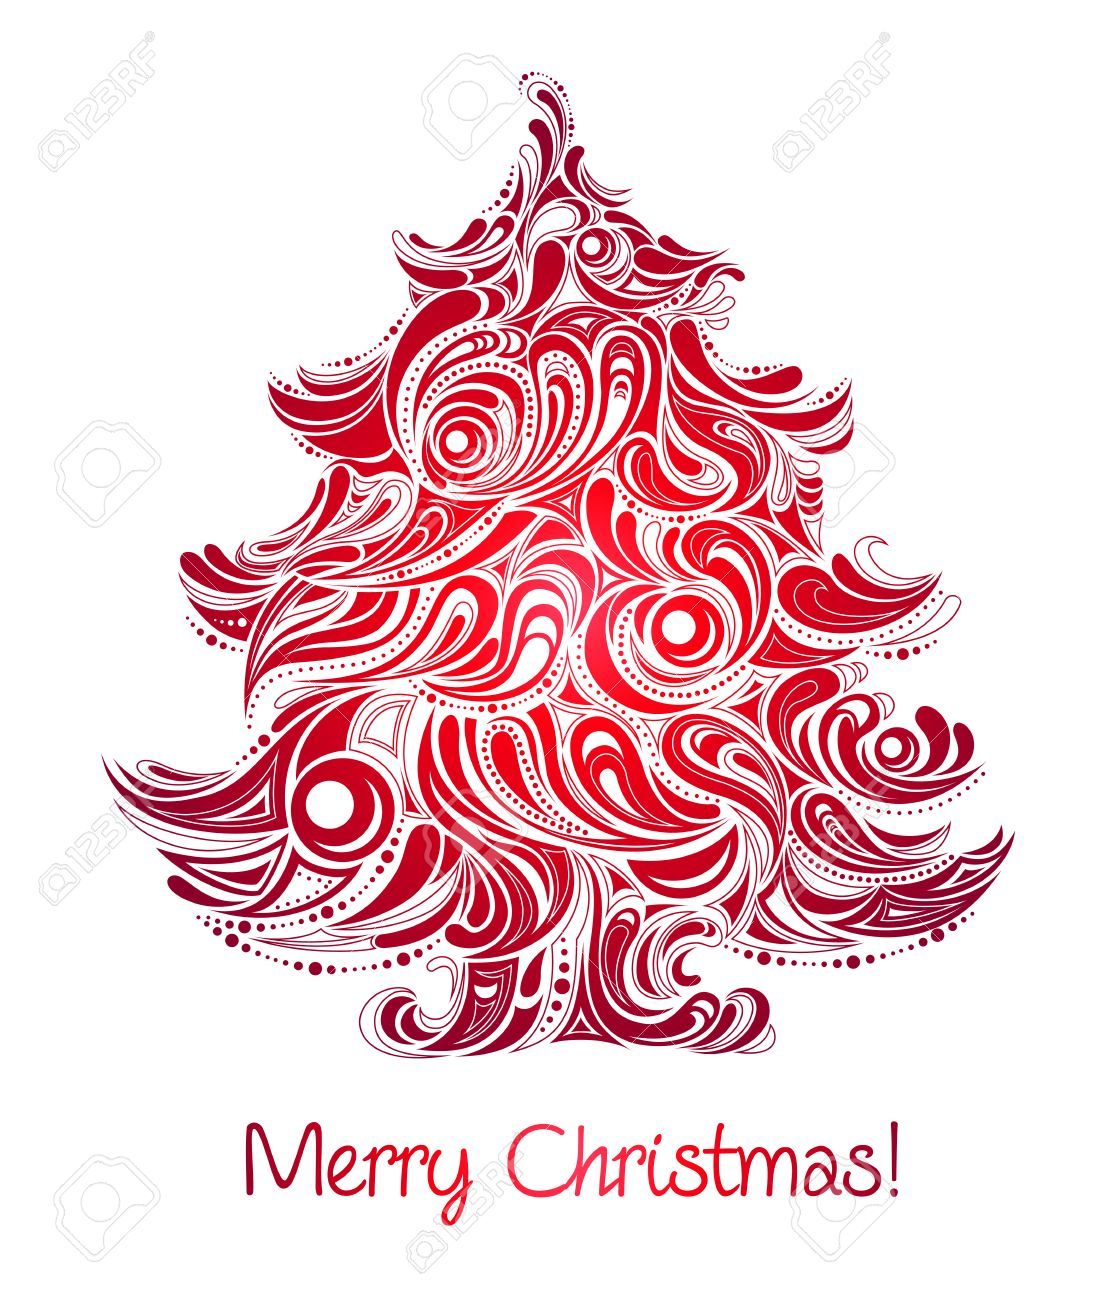 Red Christmas Tree Abstract Silhouette Royalty Free Cliparts Vectors And Stock Illustration Image 8225357